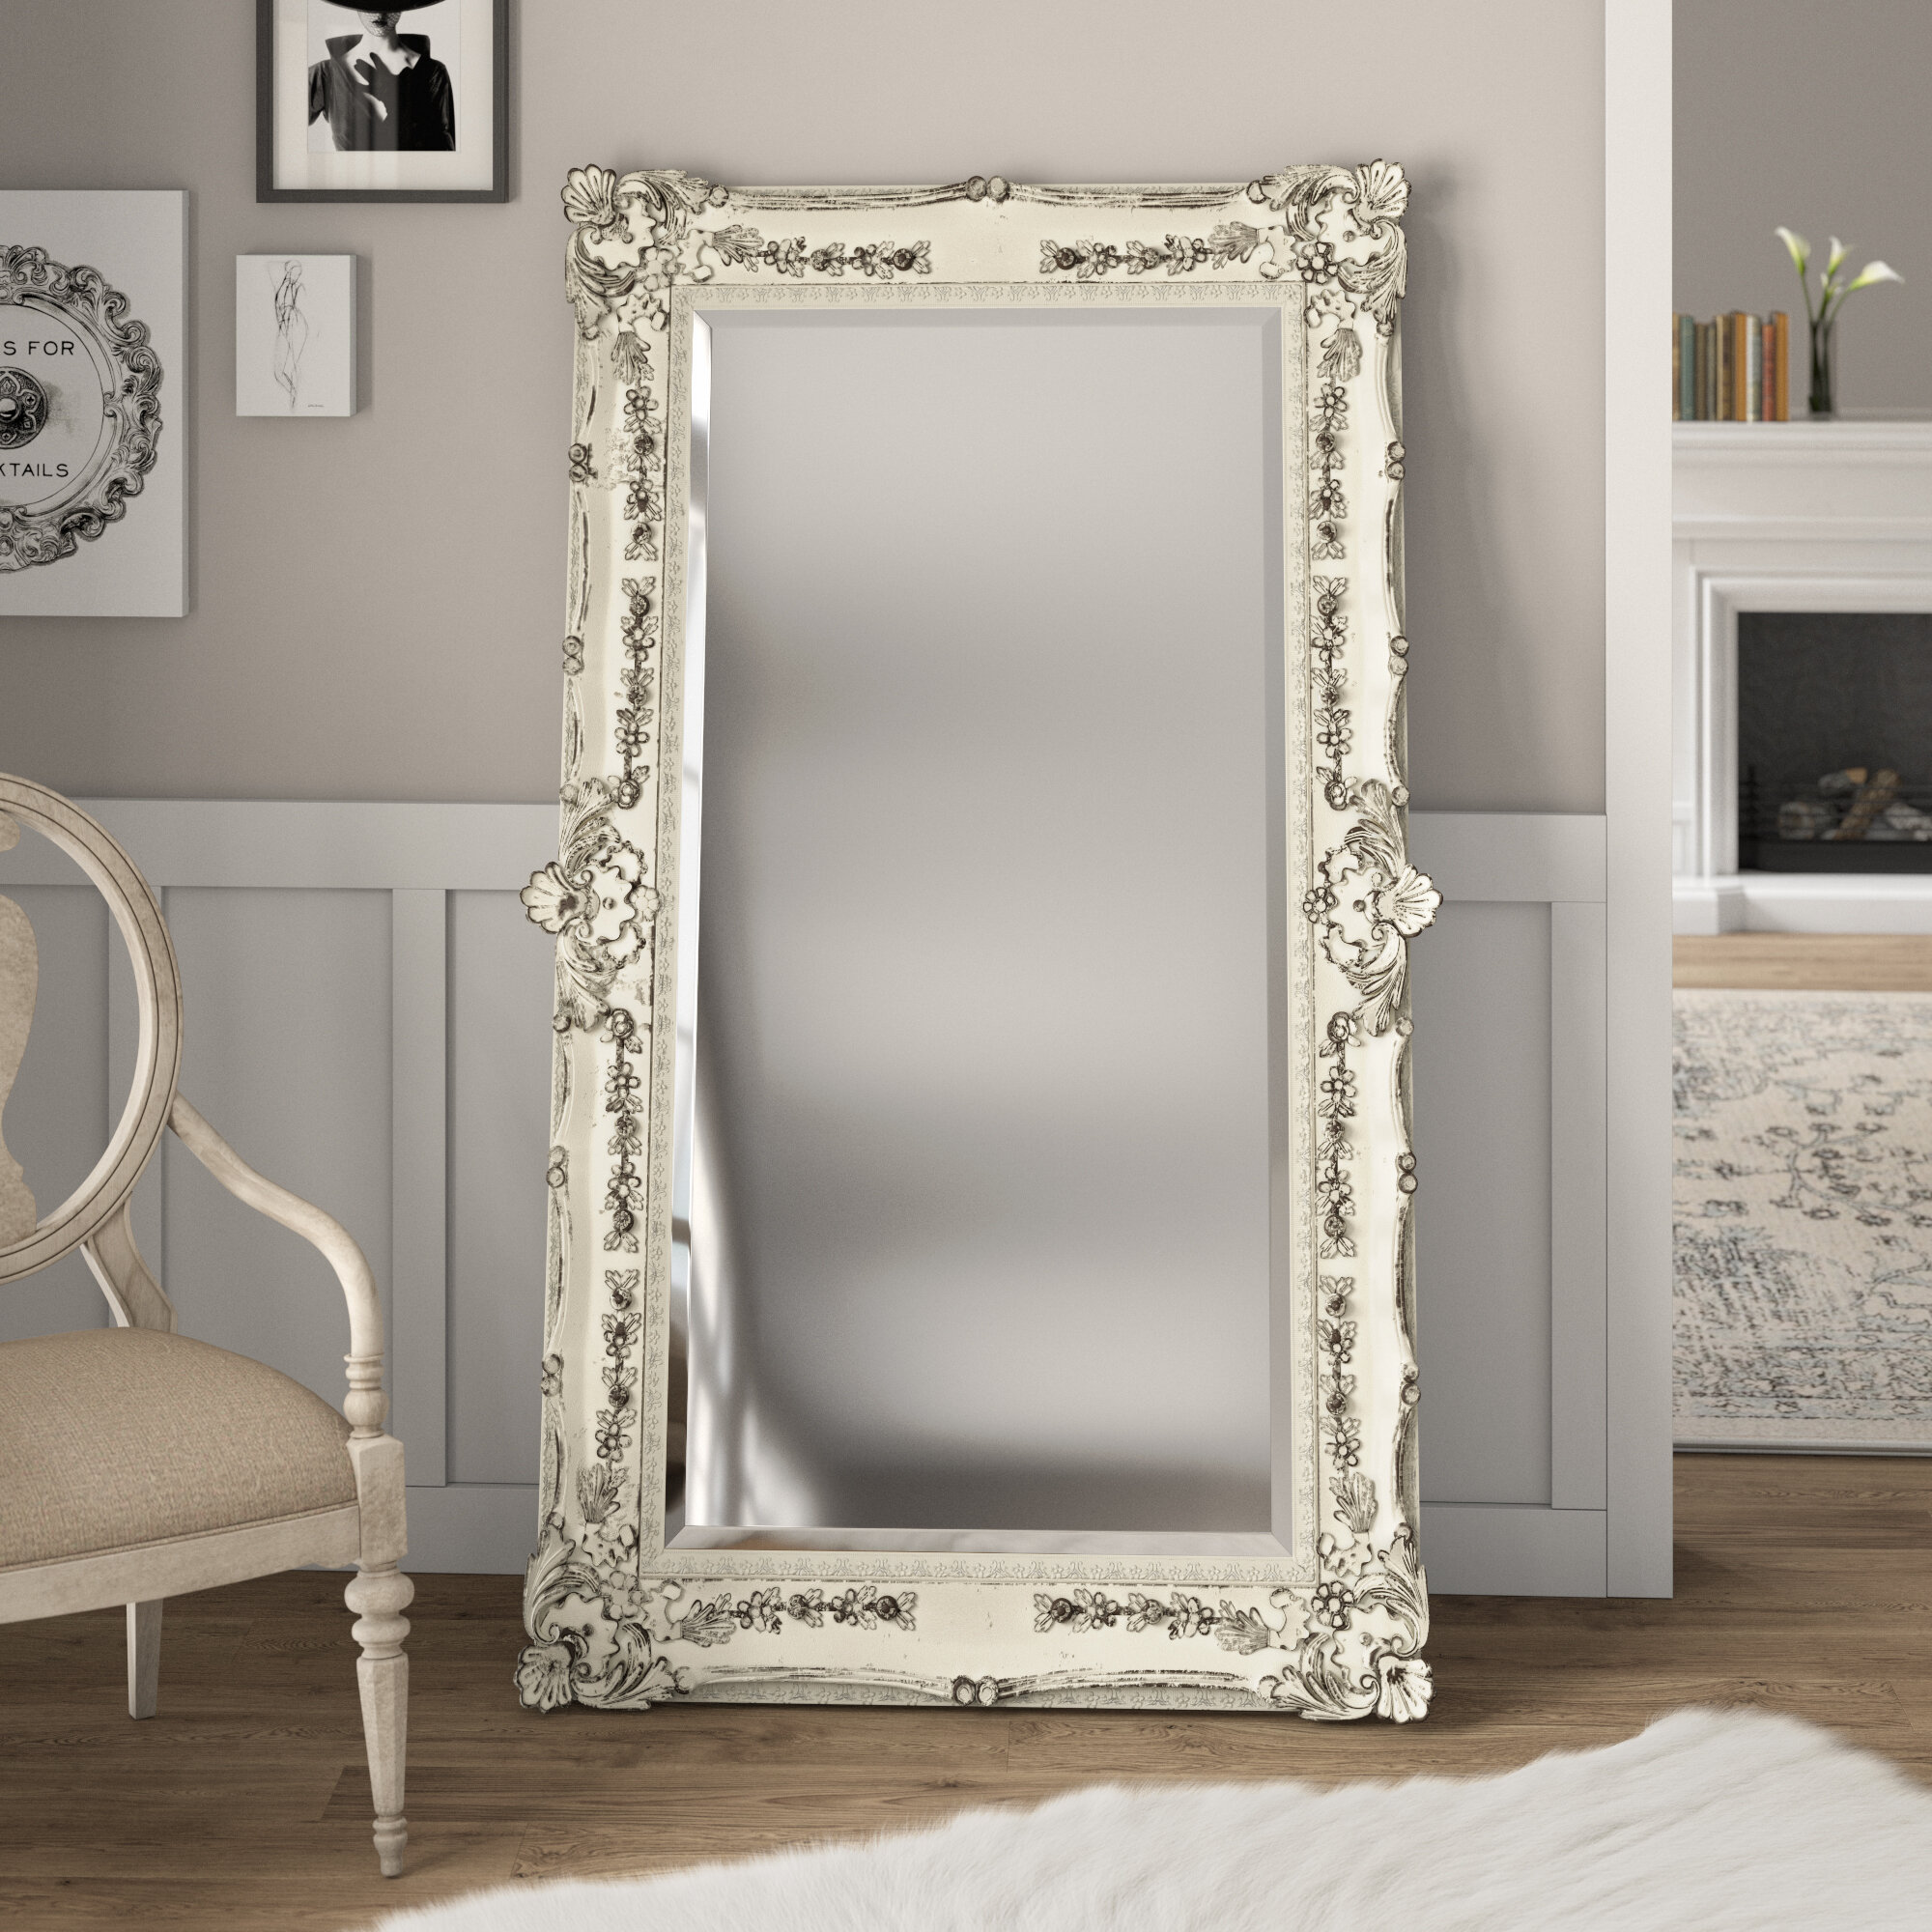 Incroyable Antique Full Length Mirror